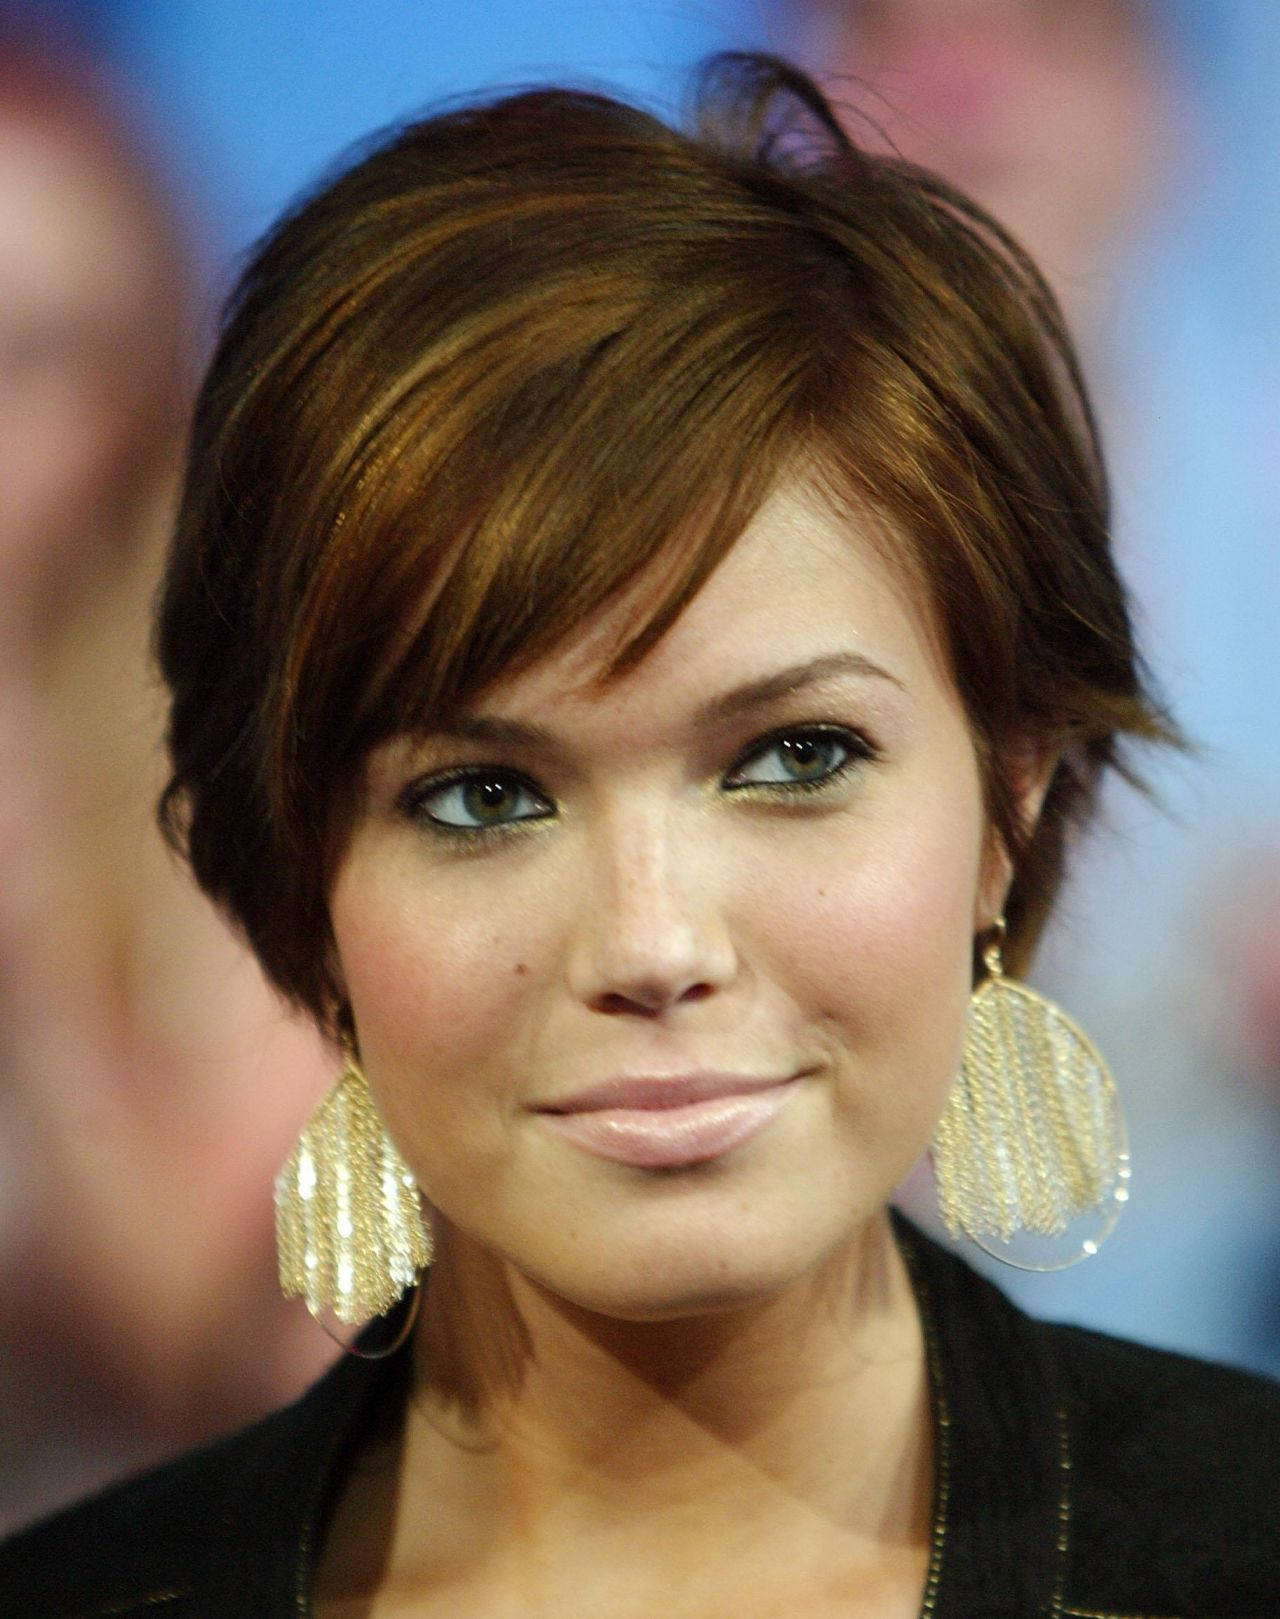 Short Female Hairstyles For Round Faces 2018 | Beauty | Pinterest Regarding Short Female Hair Cuts (View 13 of 25)